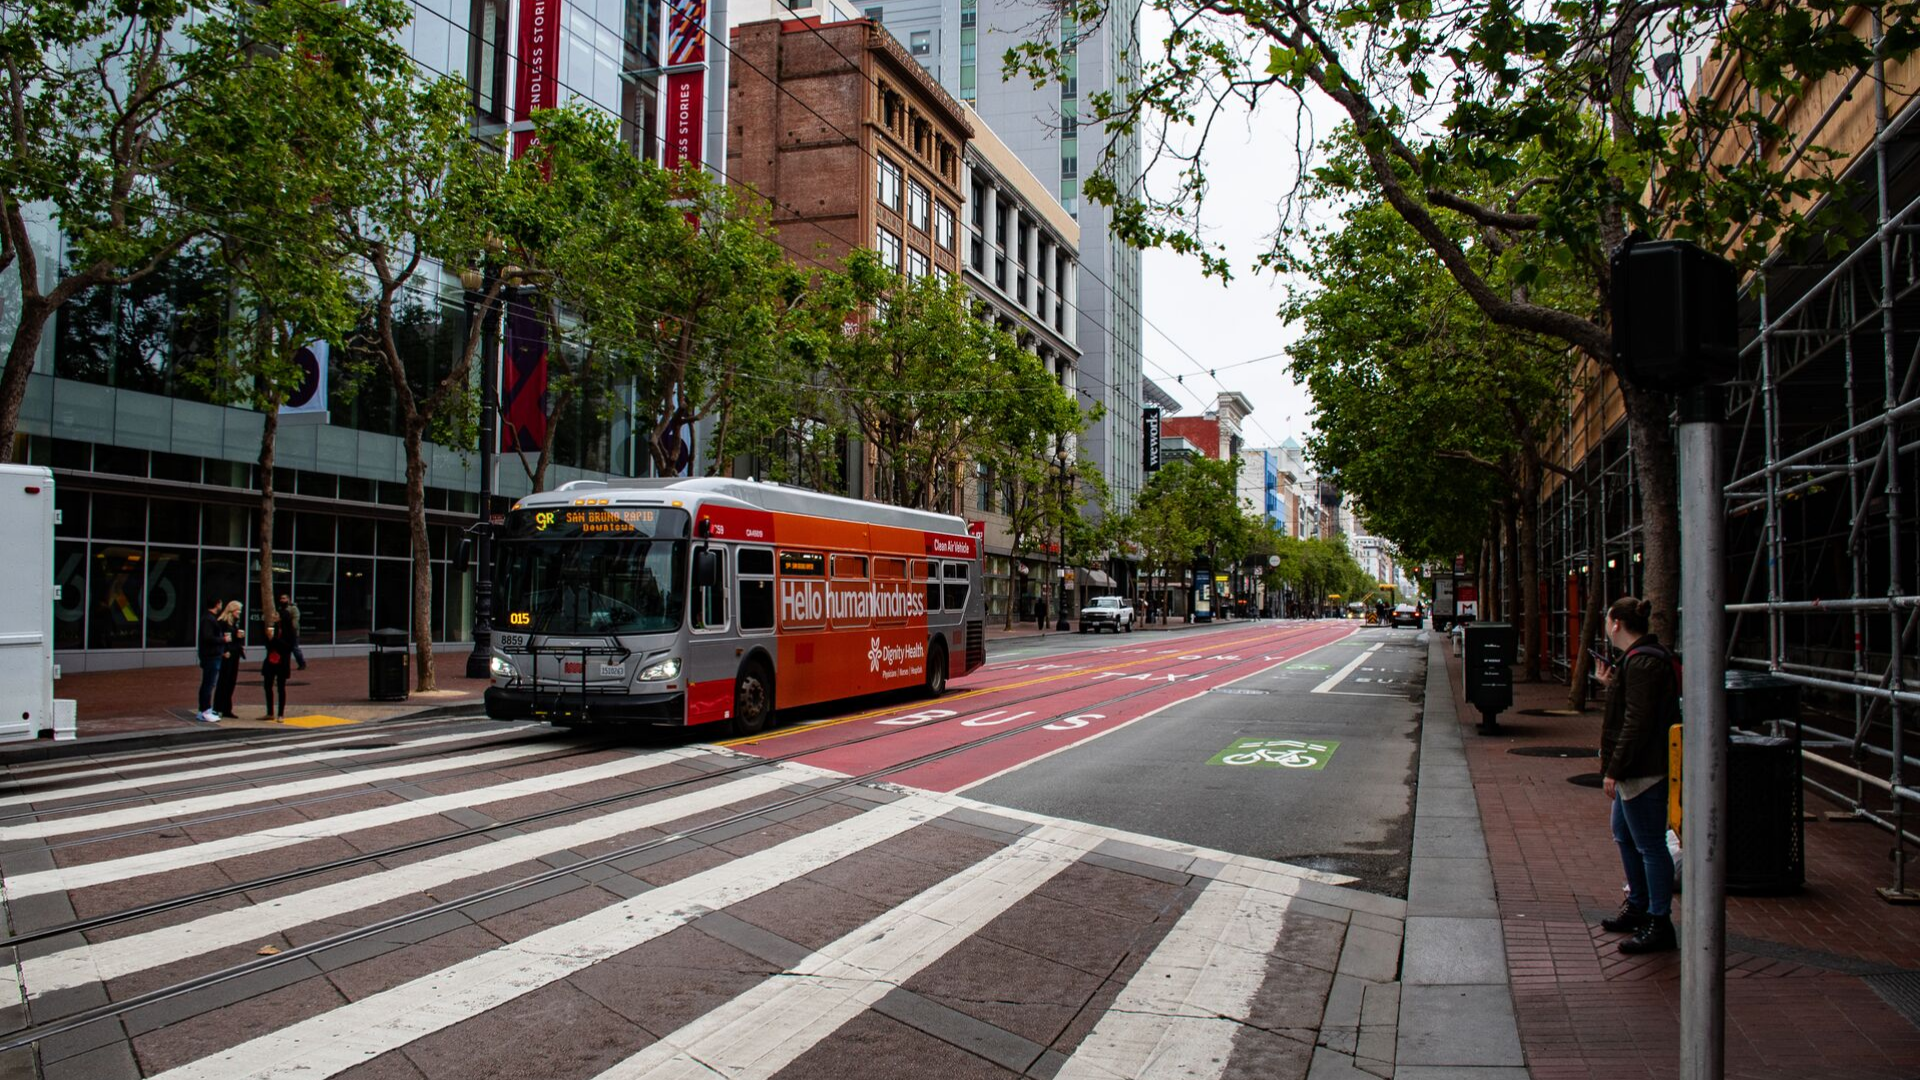 Rep. Peters Introduces Legislation to Build More Housing Near Transit